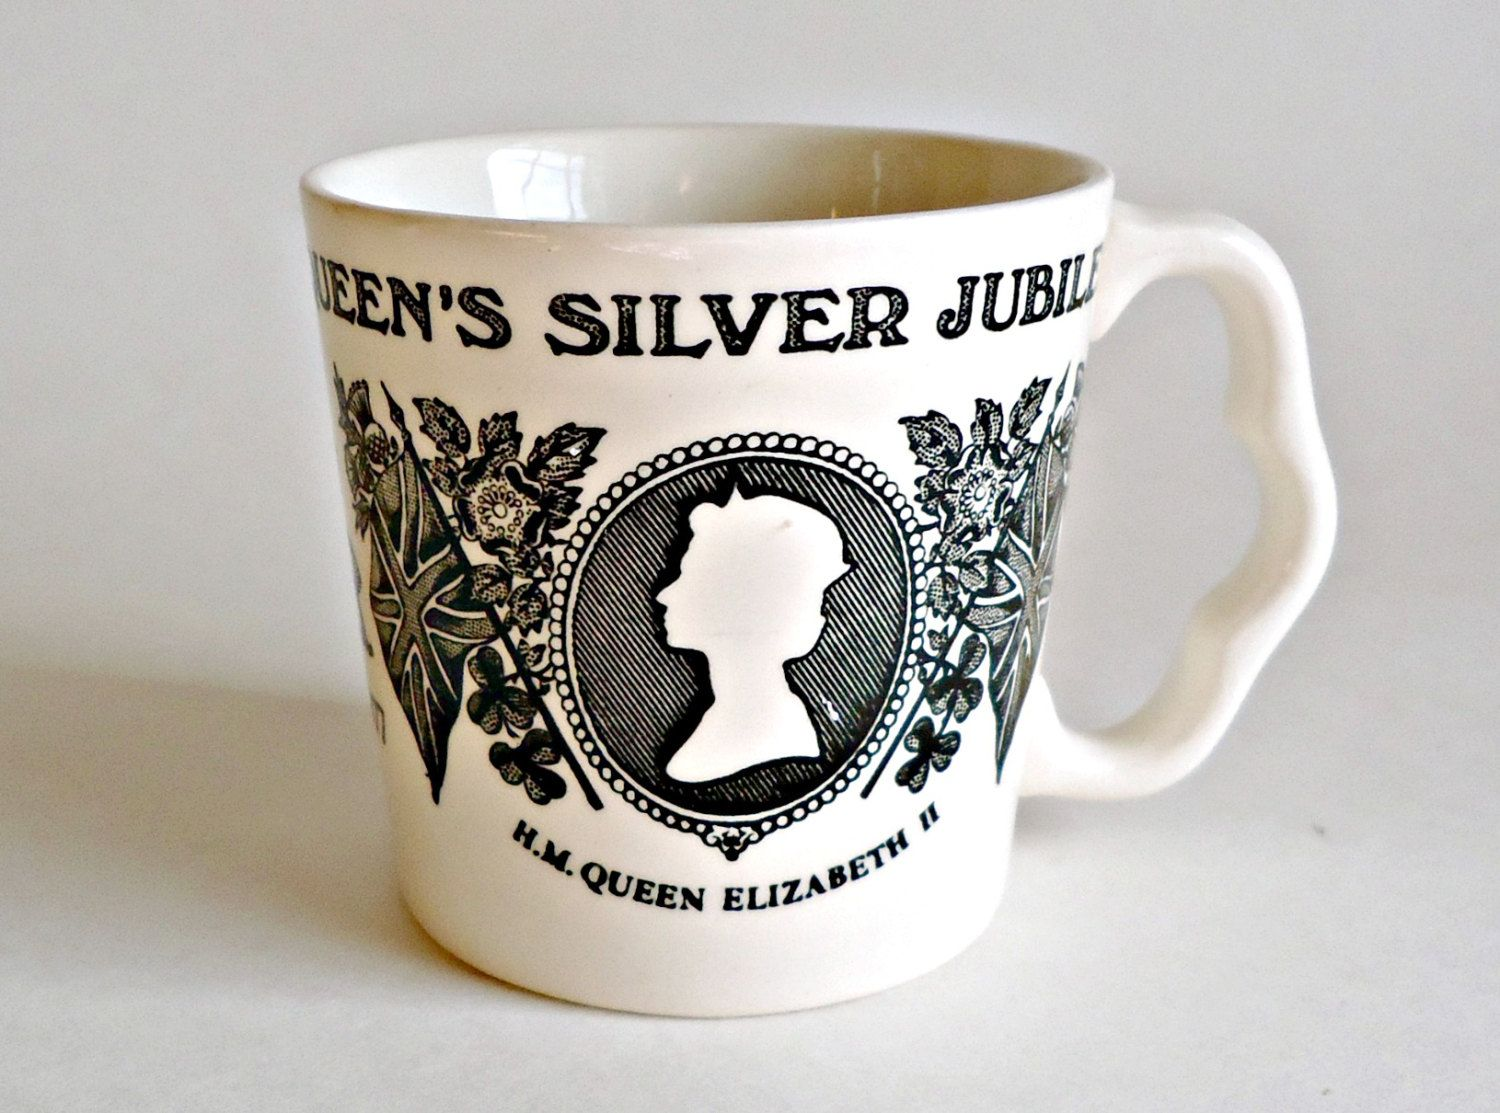 Commemorate The Queen's Silver Jubilee  Queen Elizabeth Prince Philip 1952-1977 Mug Cup Mason's by treasurecoveally on Etsy